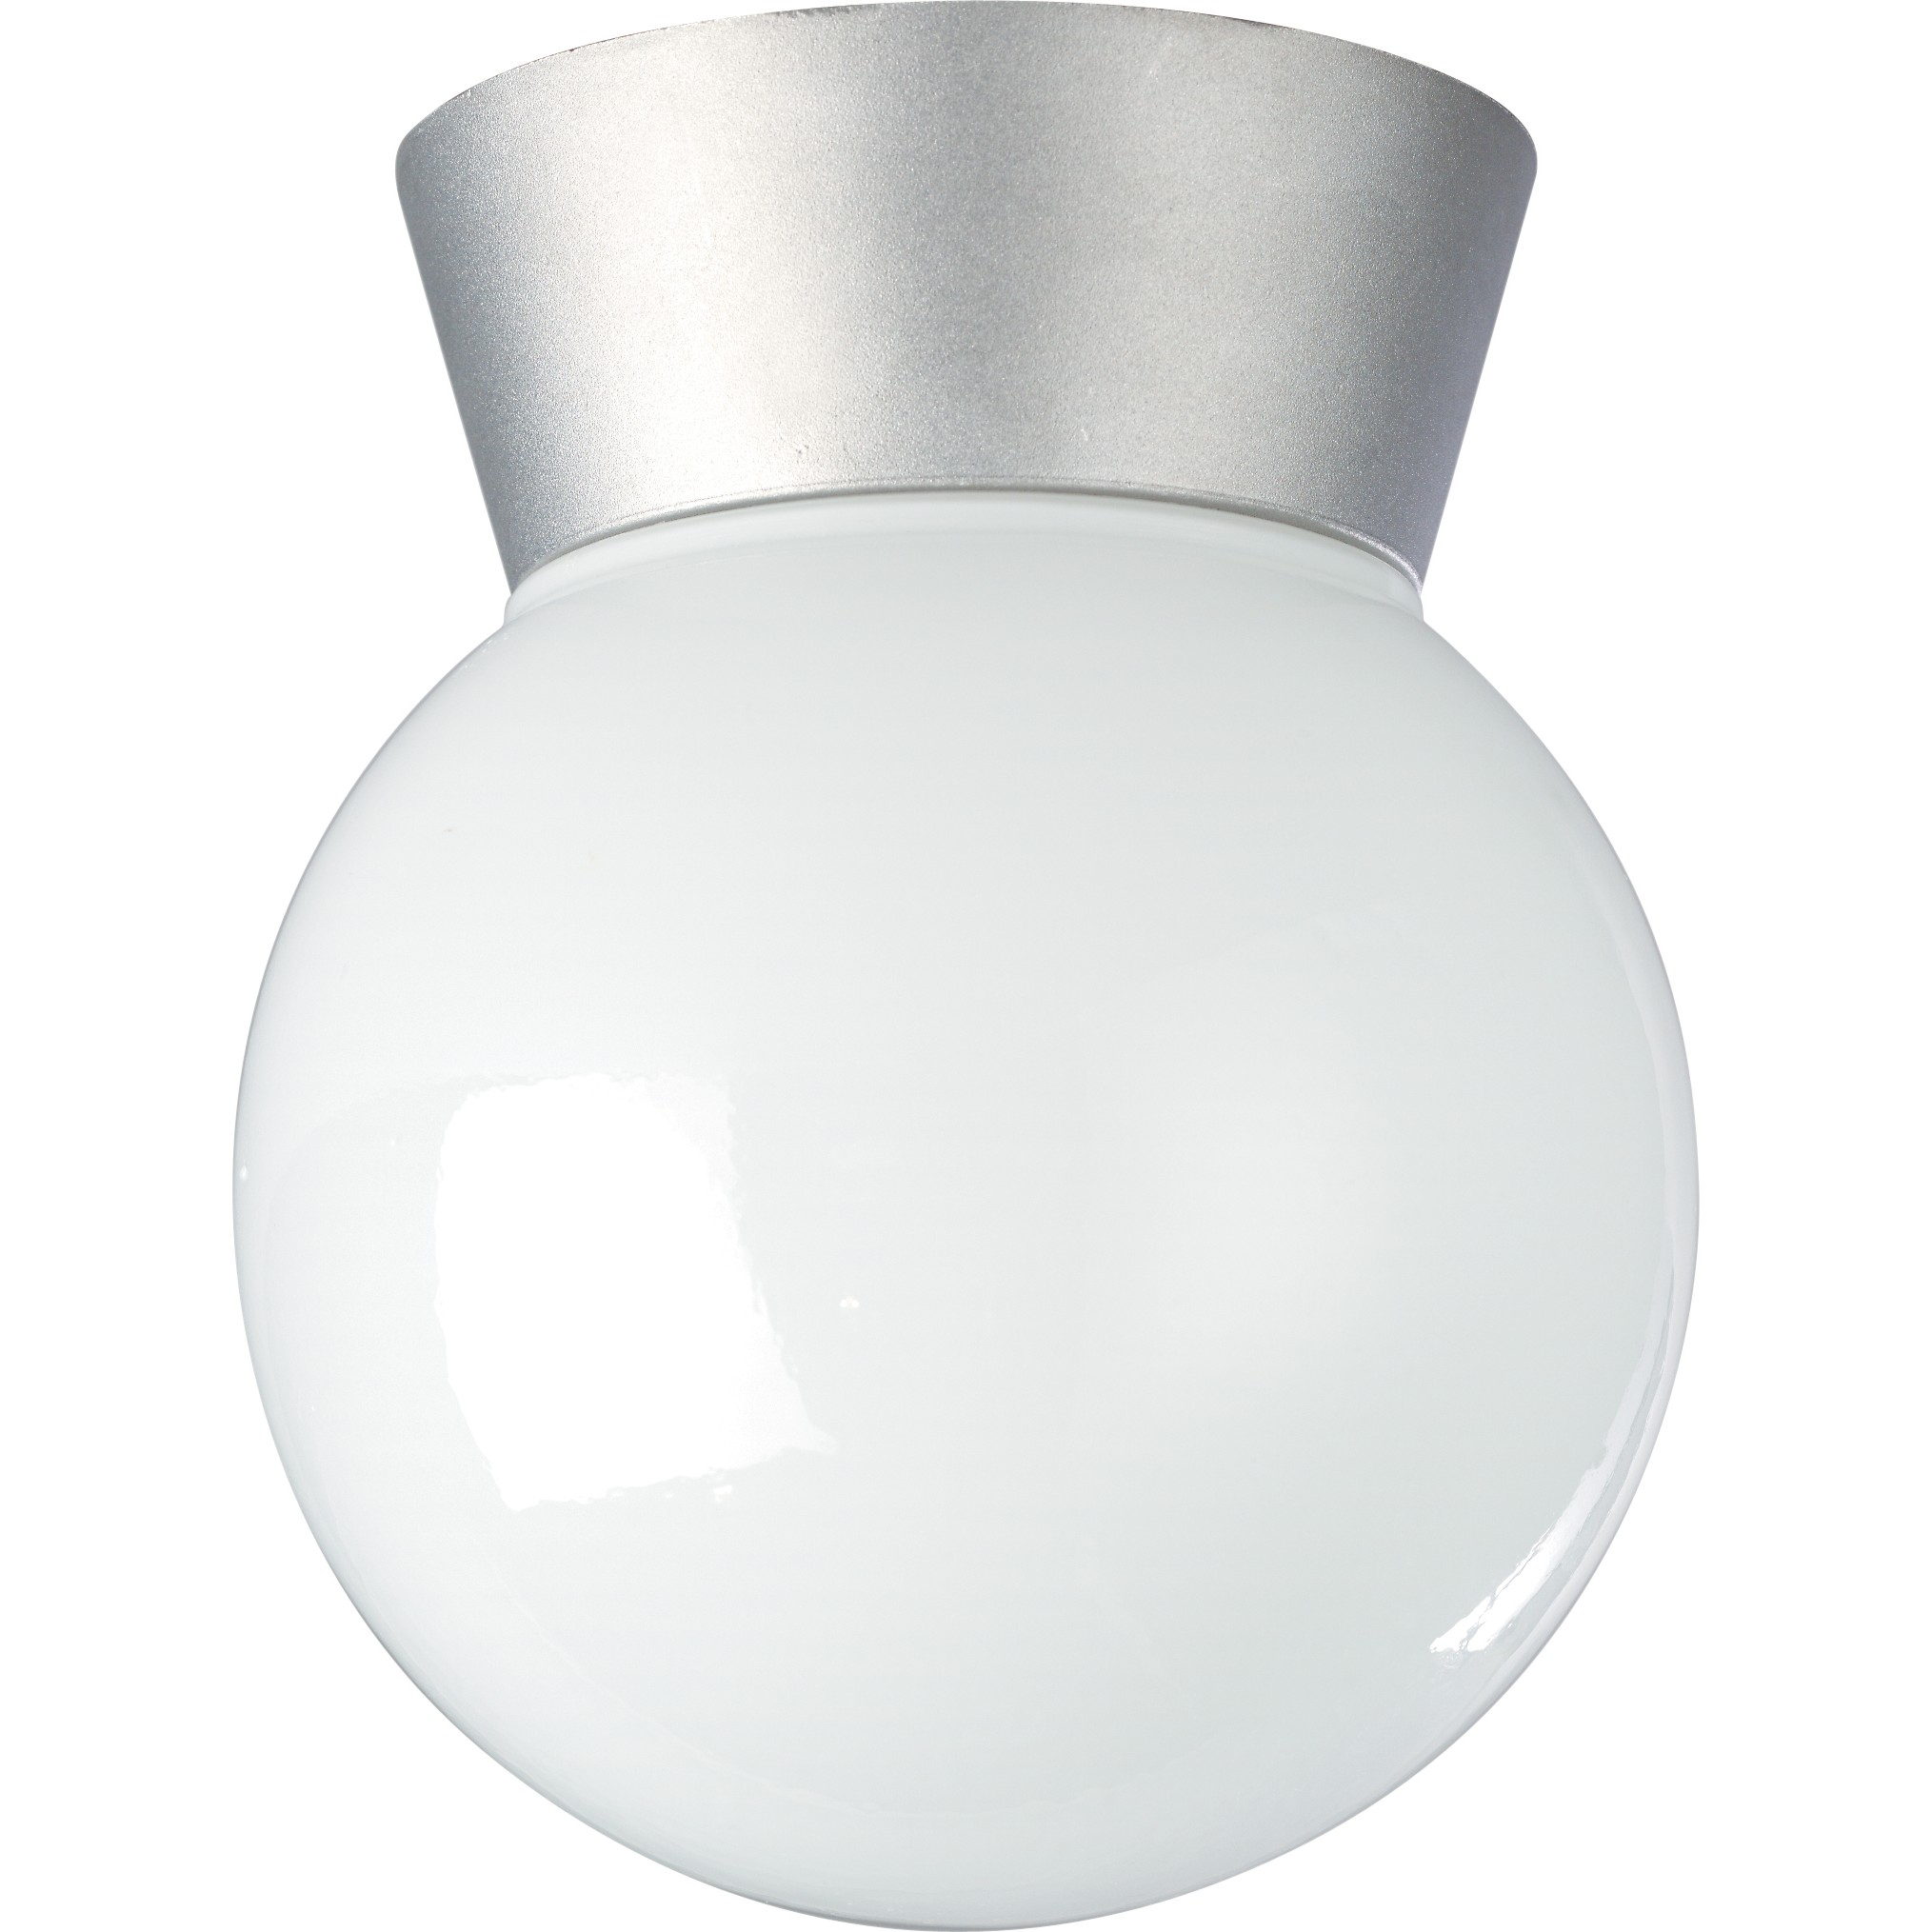 Nuvo Lighting 1 Light 8inch Utility Light Outdoor Ceiling Light For Home Lighting Ideas